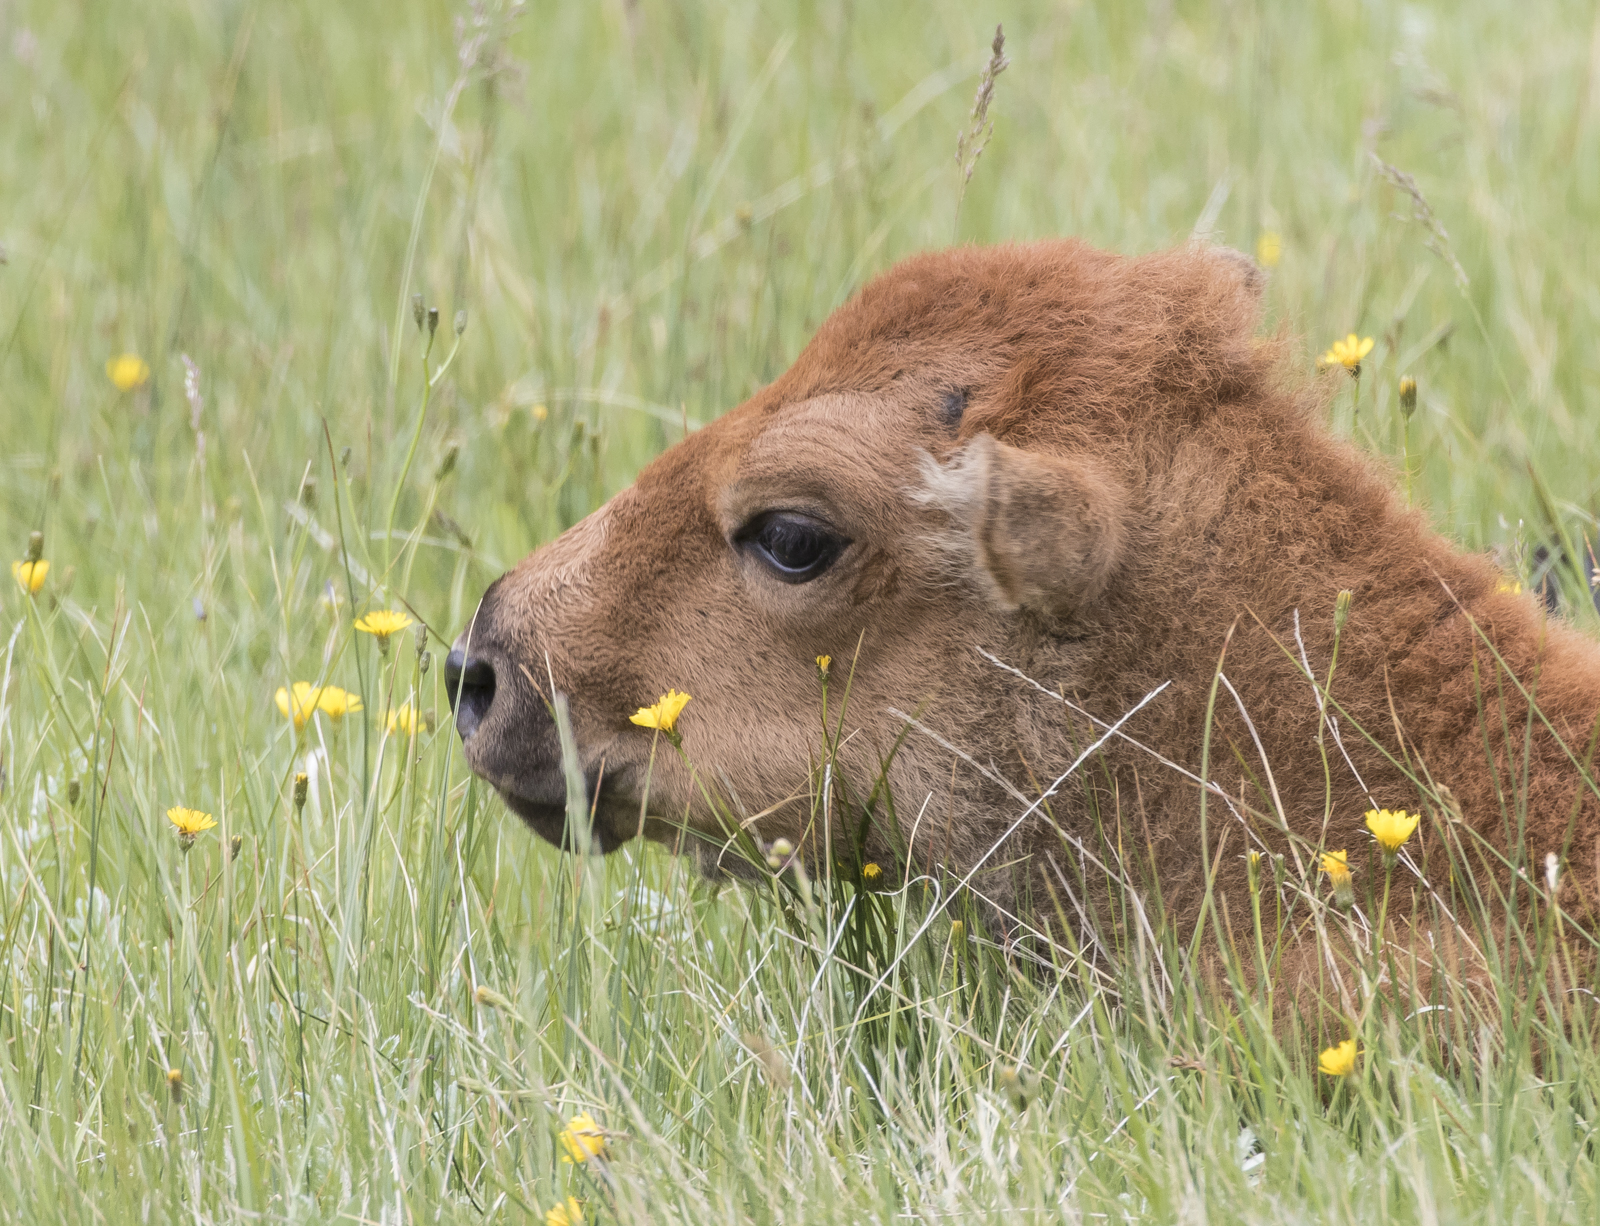 Baby bison head in flowers